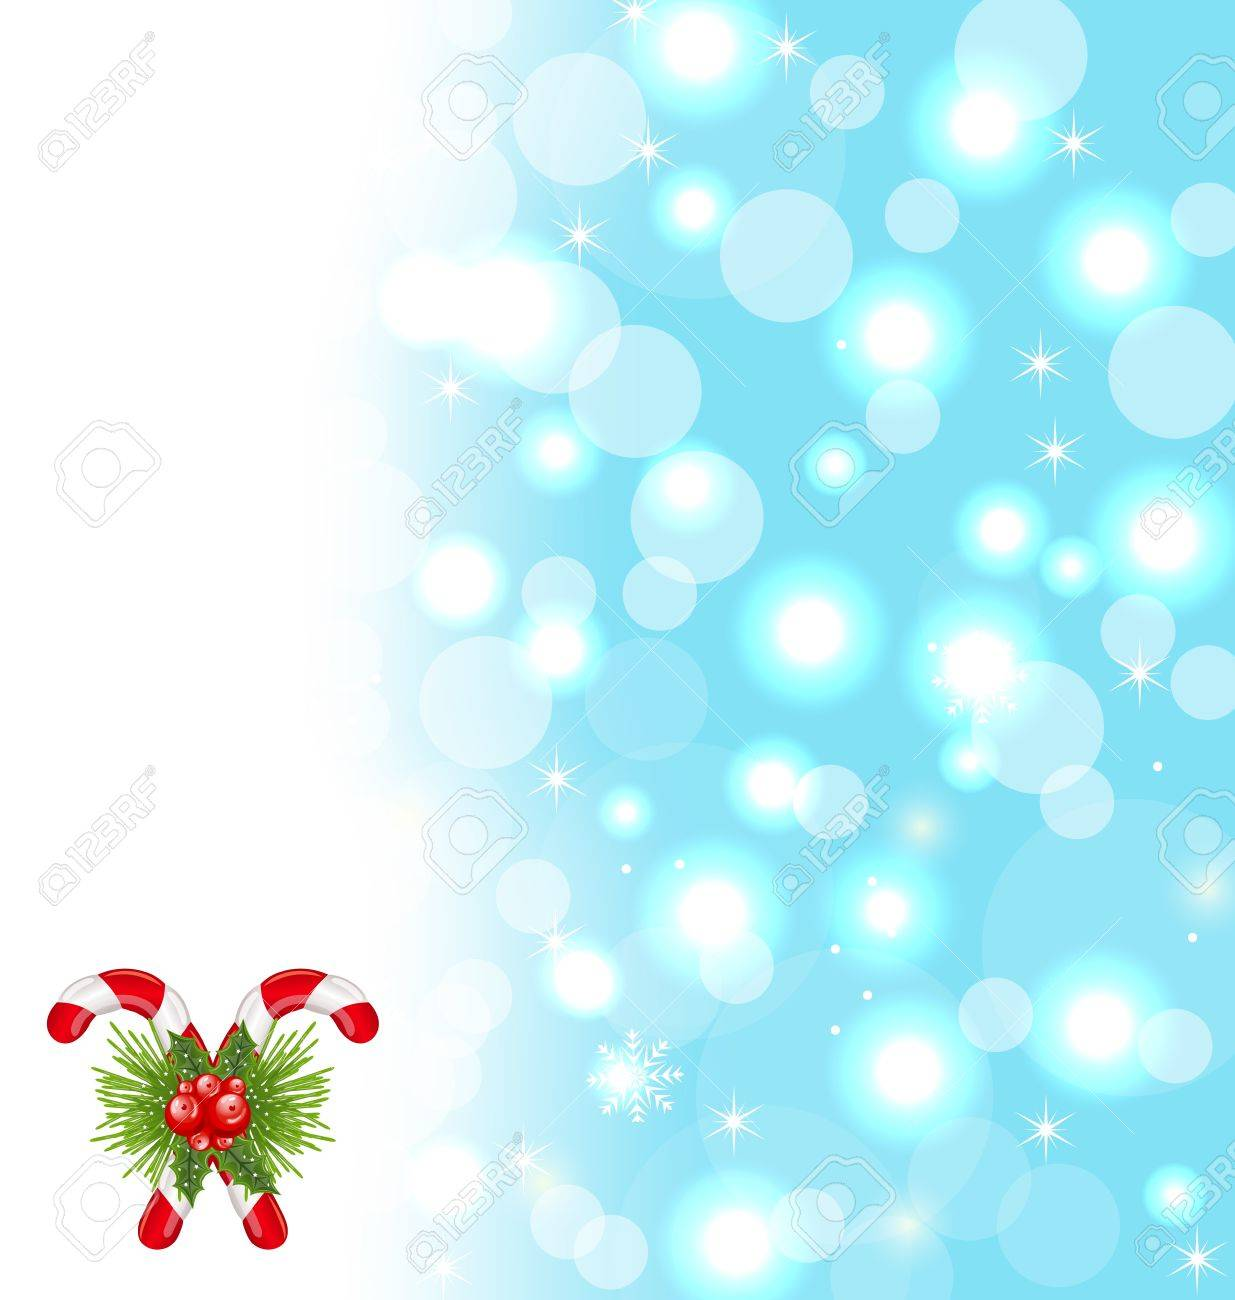 illustration christmas cute wallpaper with sparkle, snowflakes